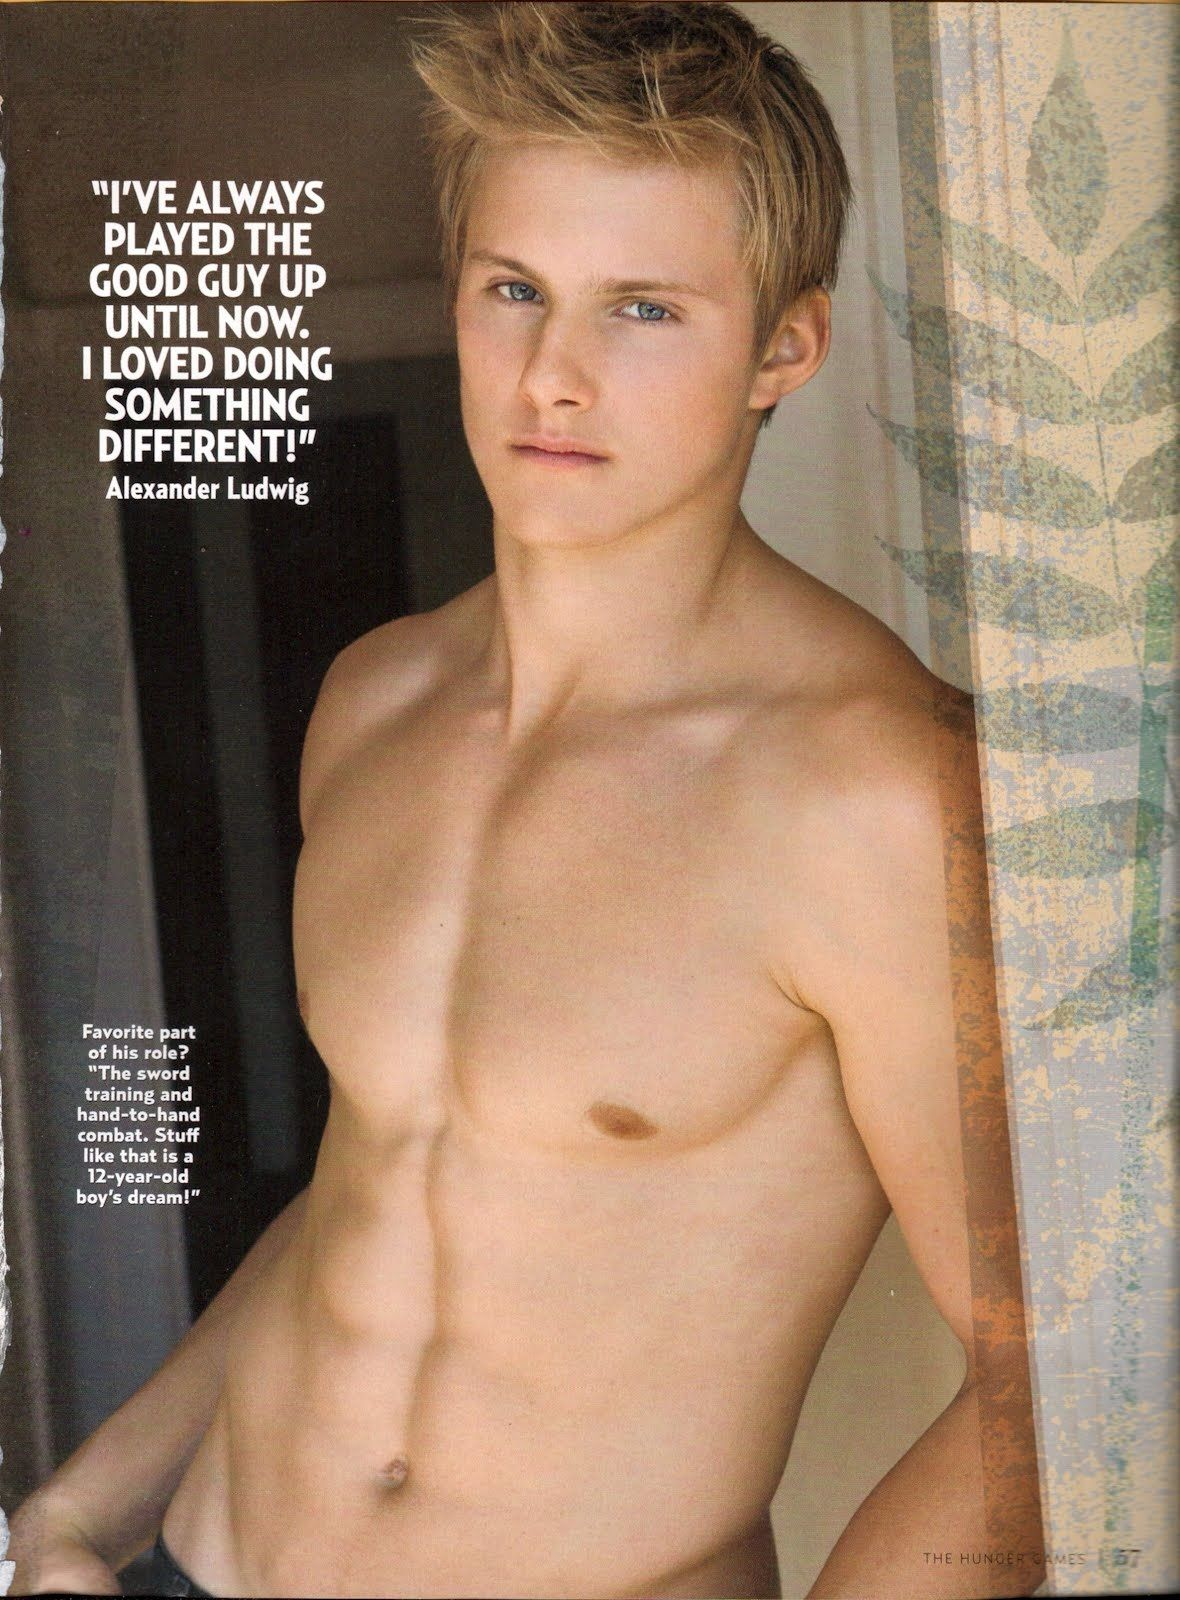 Alexander Ludwig for Abercrombie & Fitch - Fashionably Male